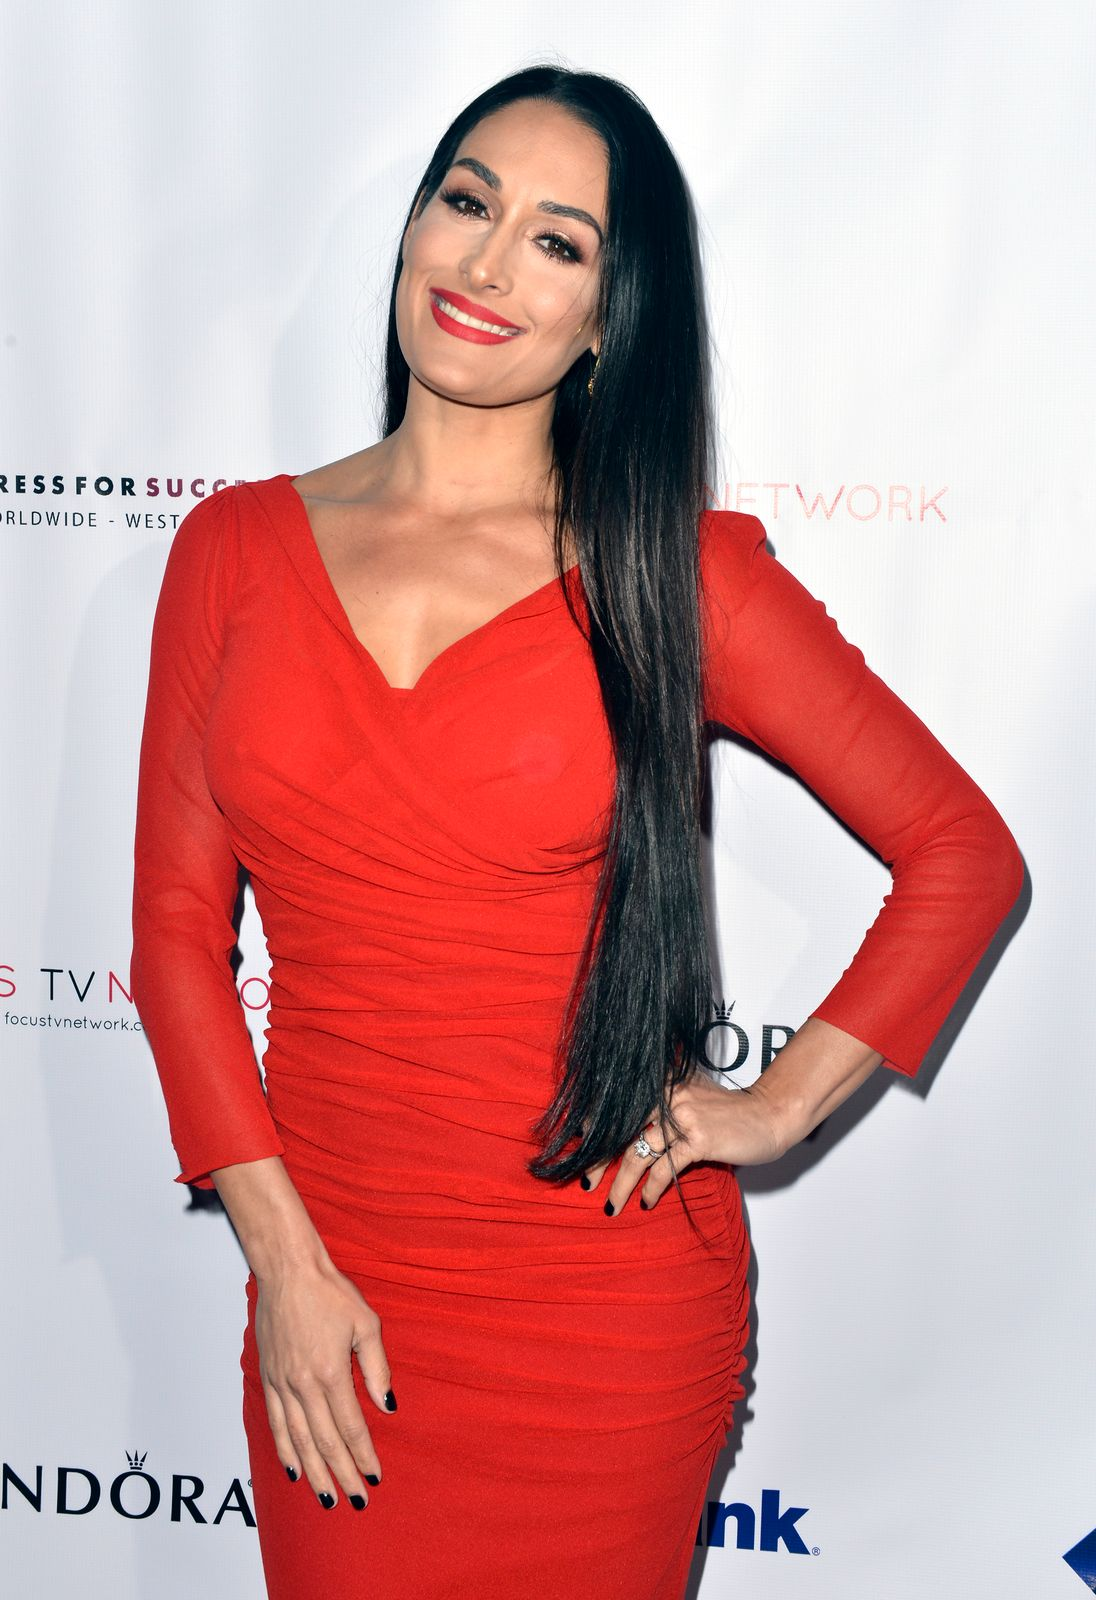 Nikki Bella at the Dress For Success Worldwide-West Seventh Annual Shop For Success Vip Event In Los Angeles on November 30, 2017 | Photo: Getty Images